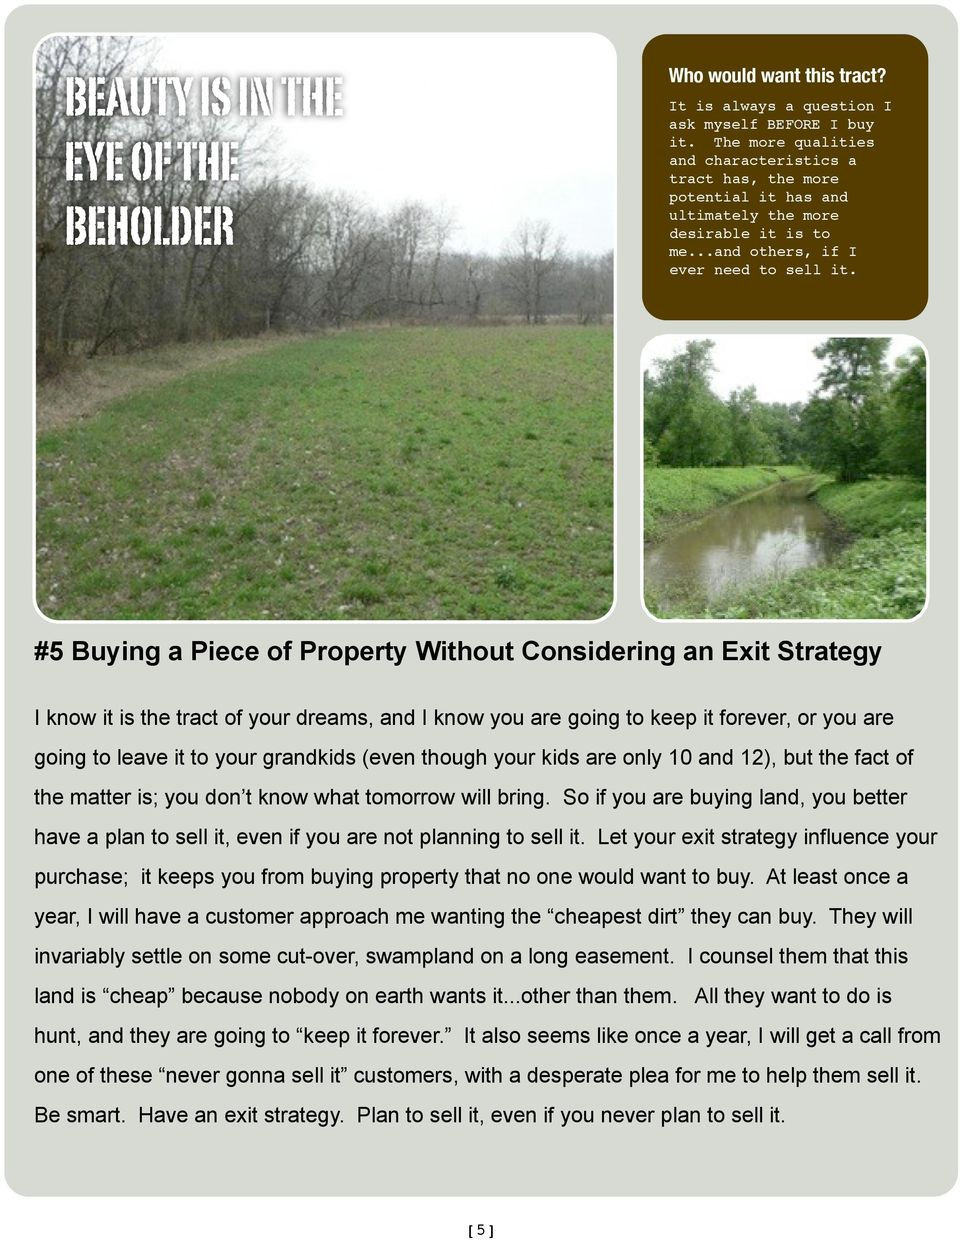 #5 Buying a Piece of Property Without Considering an Exit Strategy I know it is the tract of your dreams, and I know you are going to keep it forever, or you are going to leave it to your grandkids